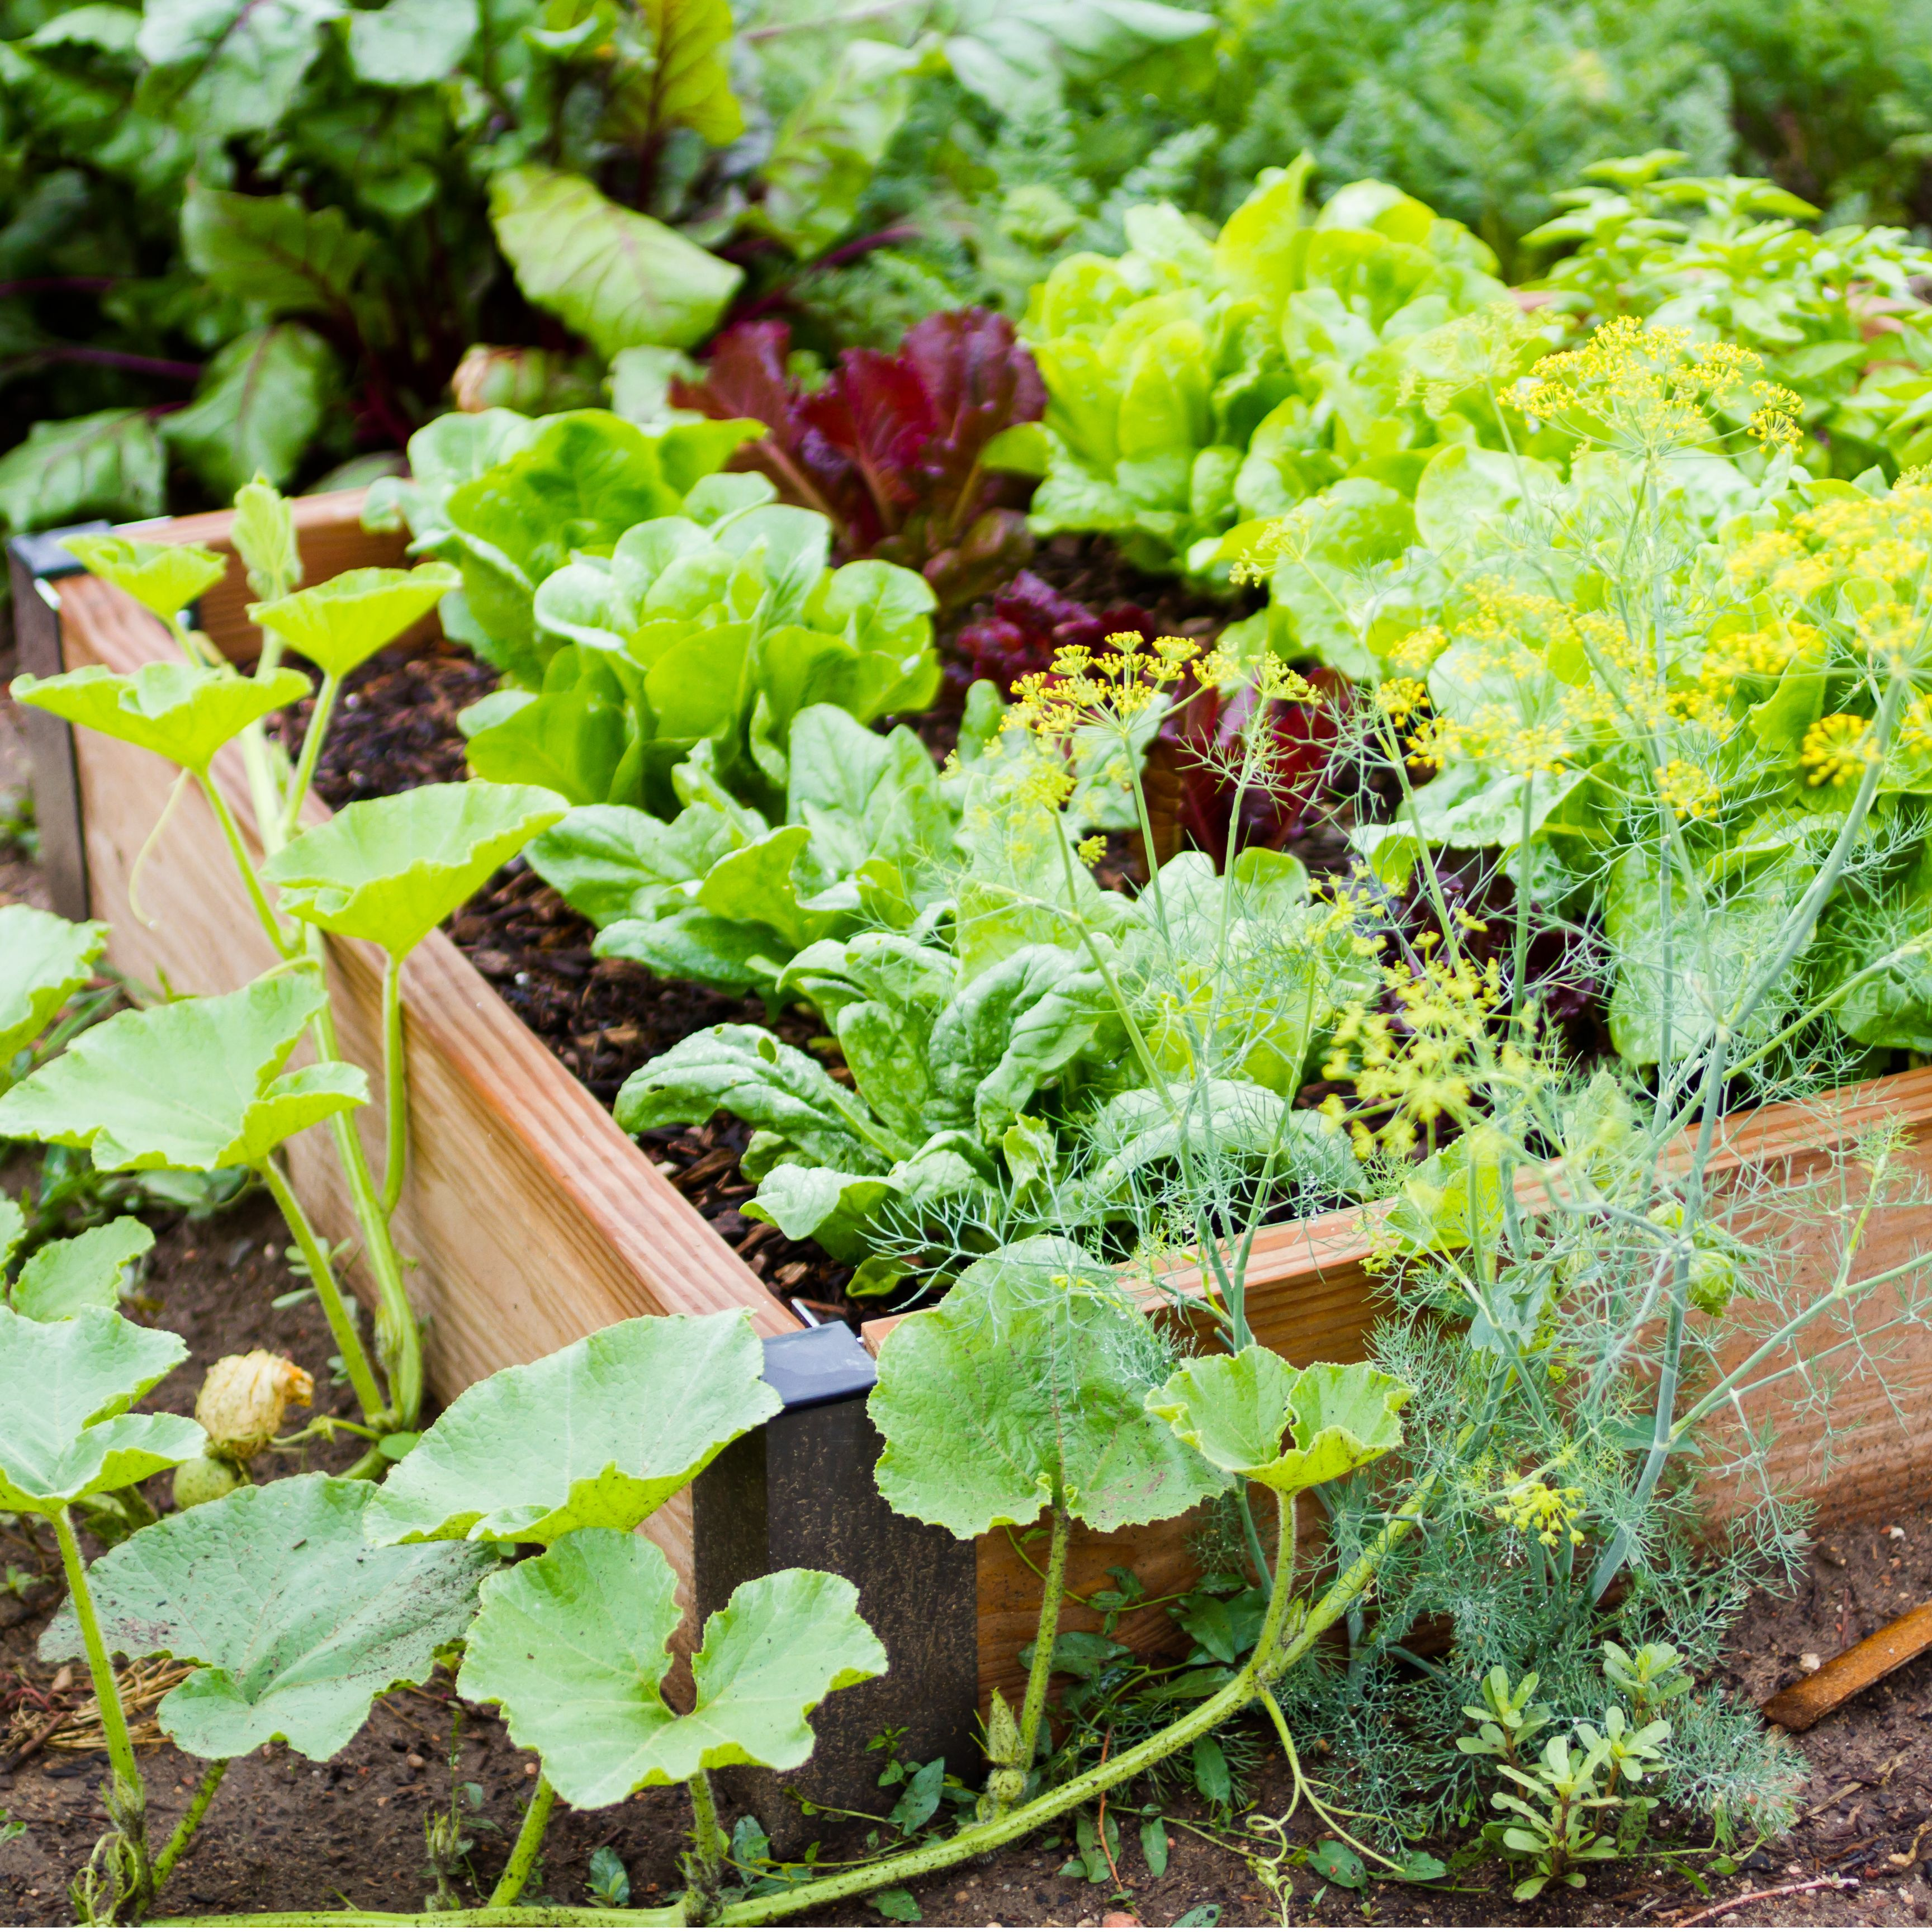 Creating Our First Vegetable Garden Advice Please: How To Ready Your Garden For Growing Fruit And Vegetables